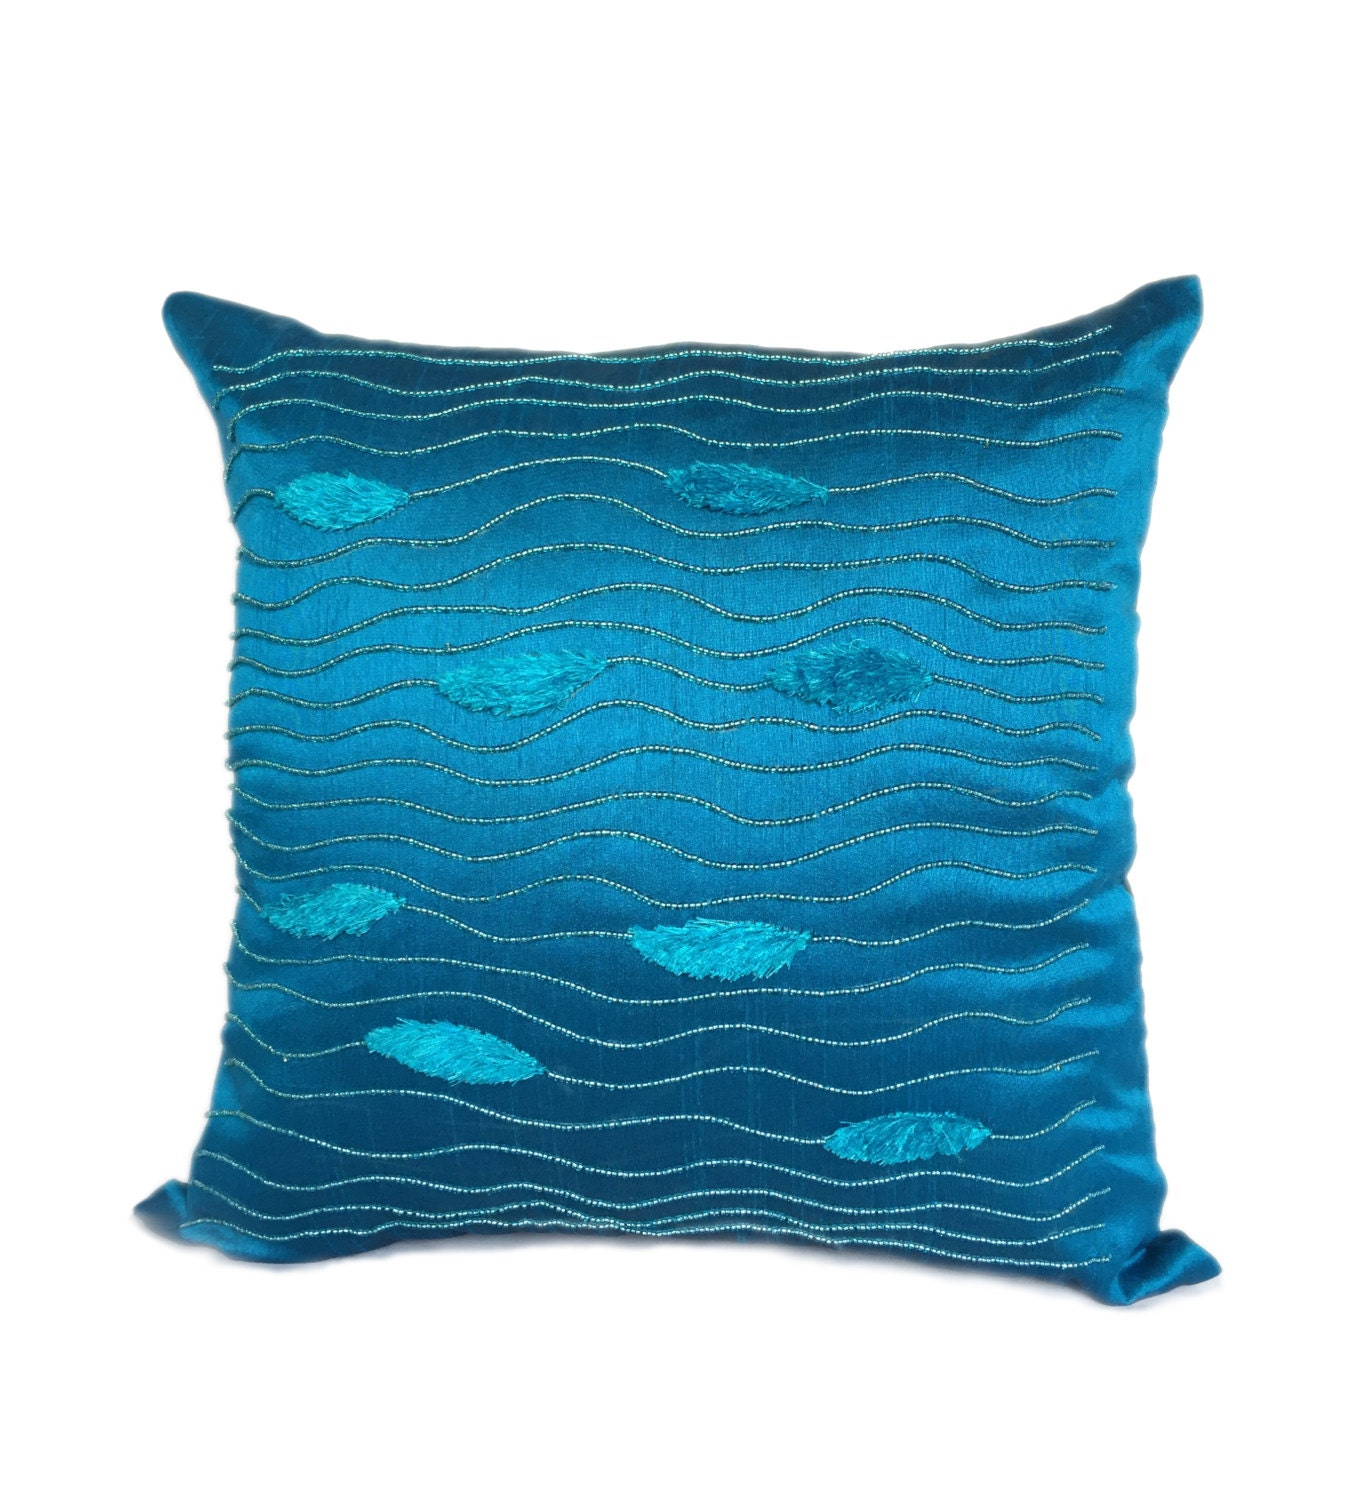 Blue Beaded Throw Pillow : Blue Pillow Cover Beaded In A Wave Pattern Decorative Pillows